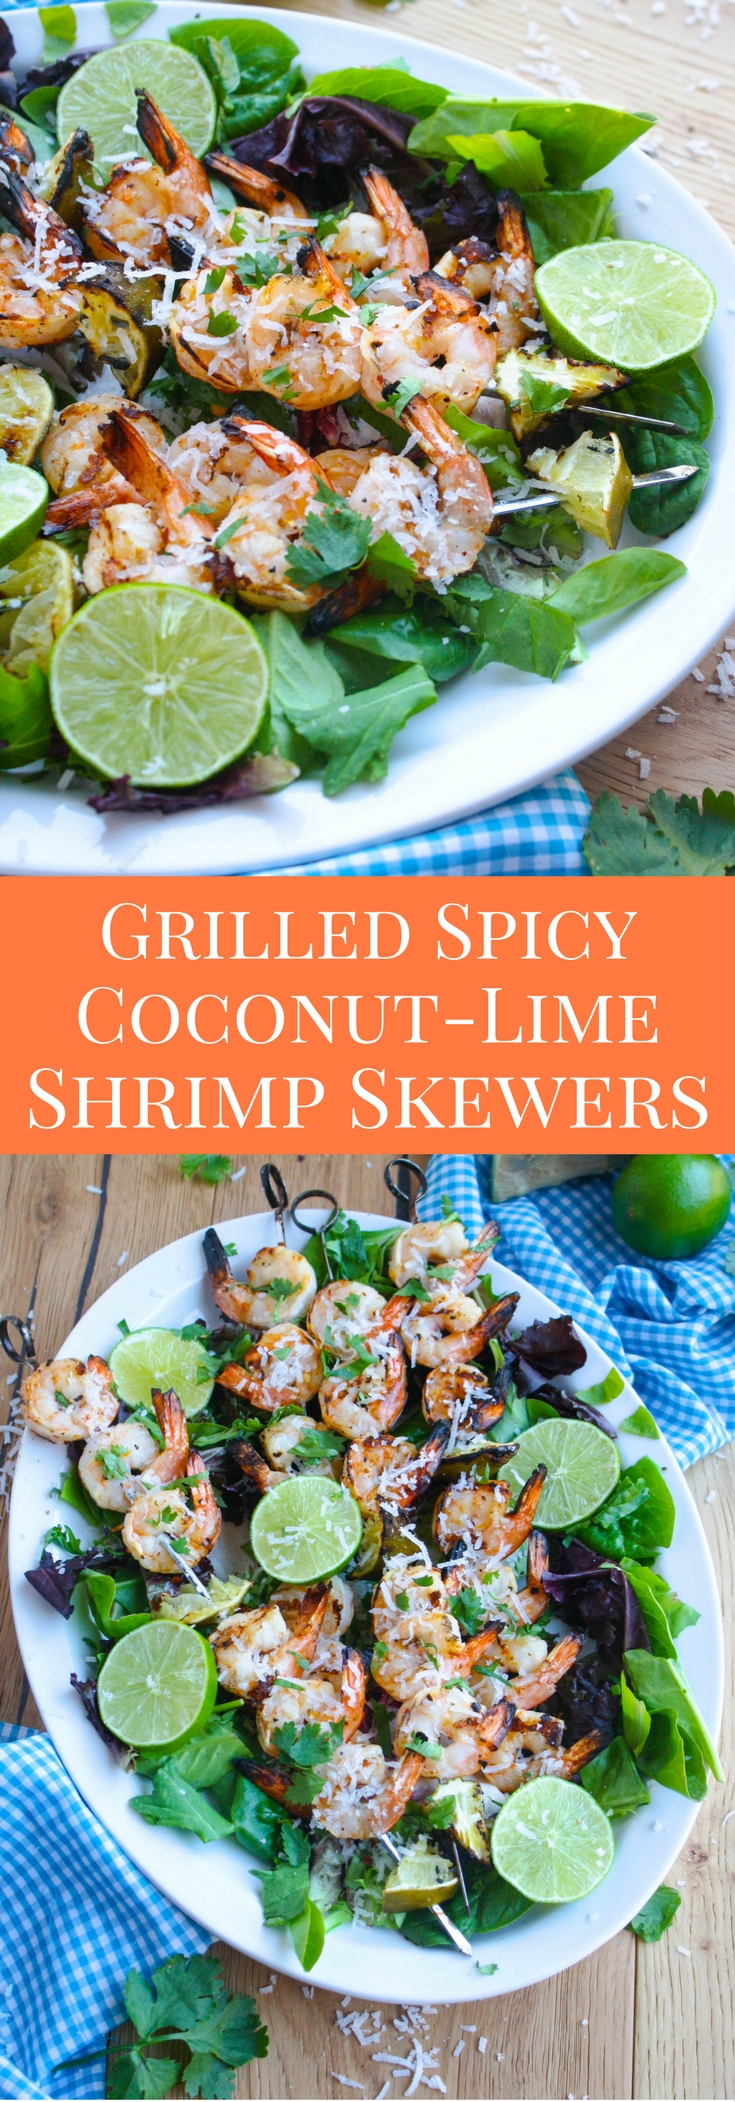 Grilled Spicy Coconut-Lime Shrimp Skewers are one of summer grilling season's stars! Big flavor and little fuss make this dish a winner!